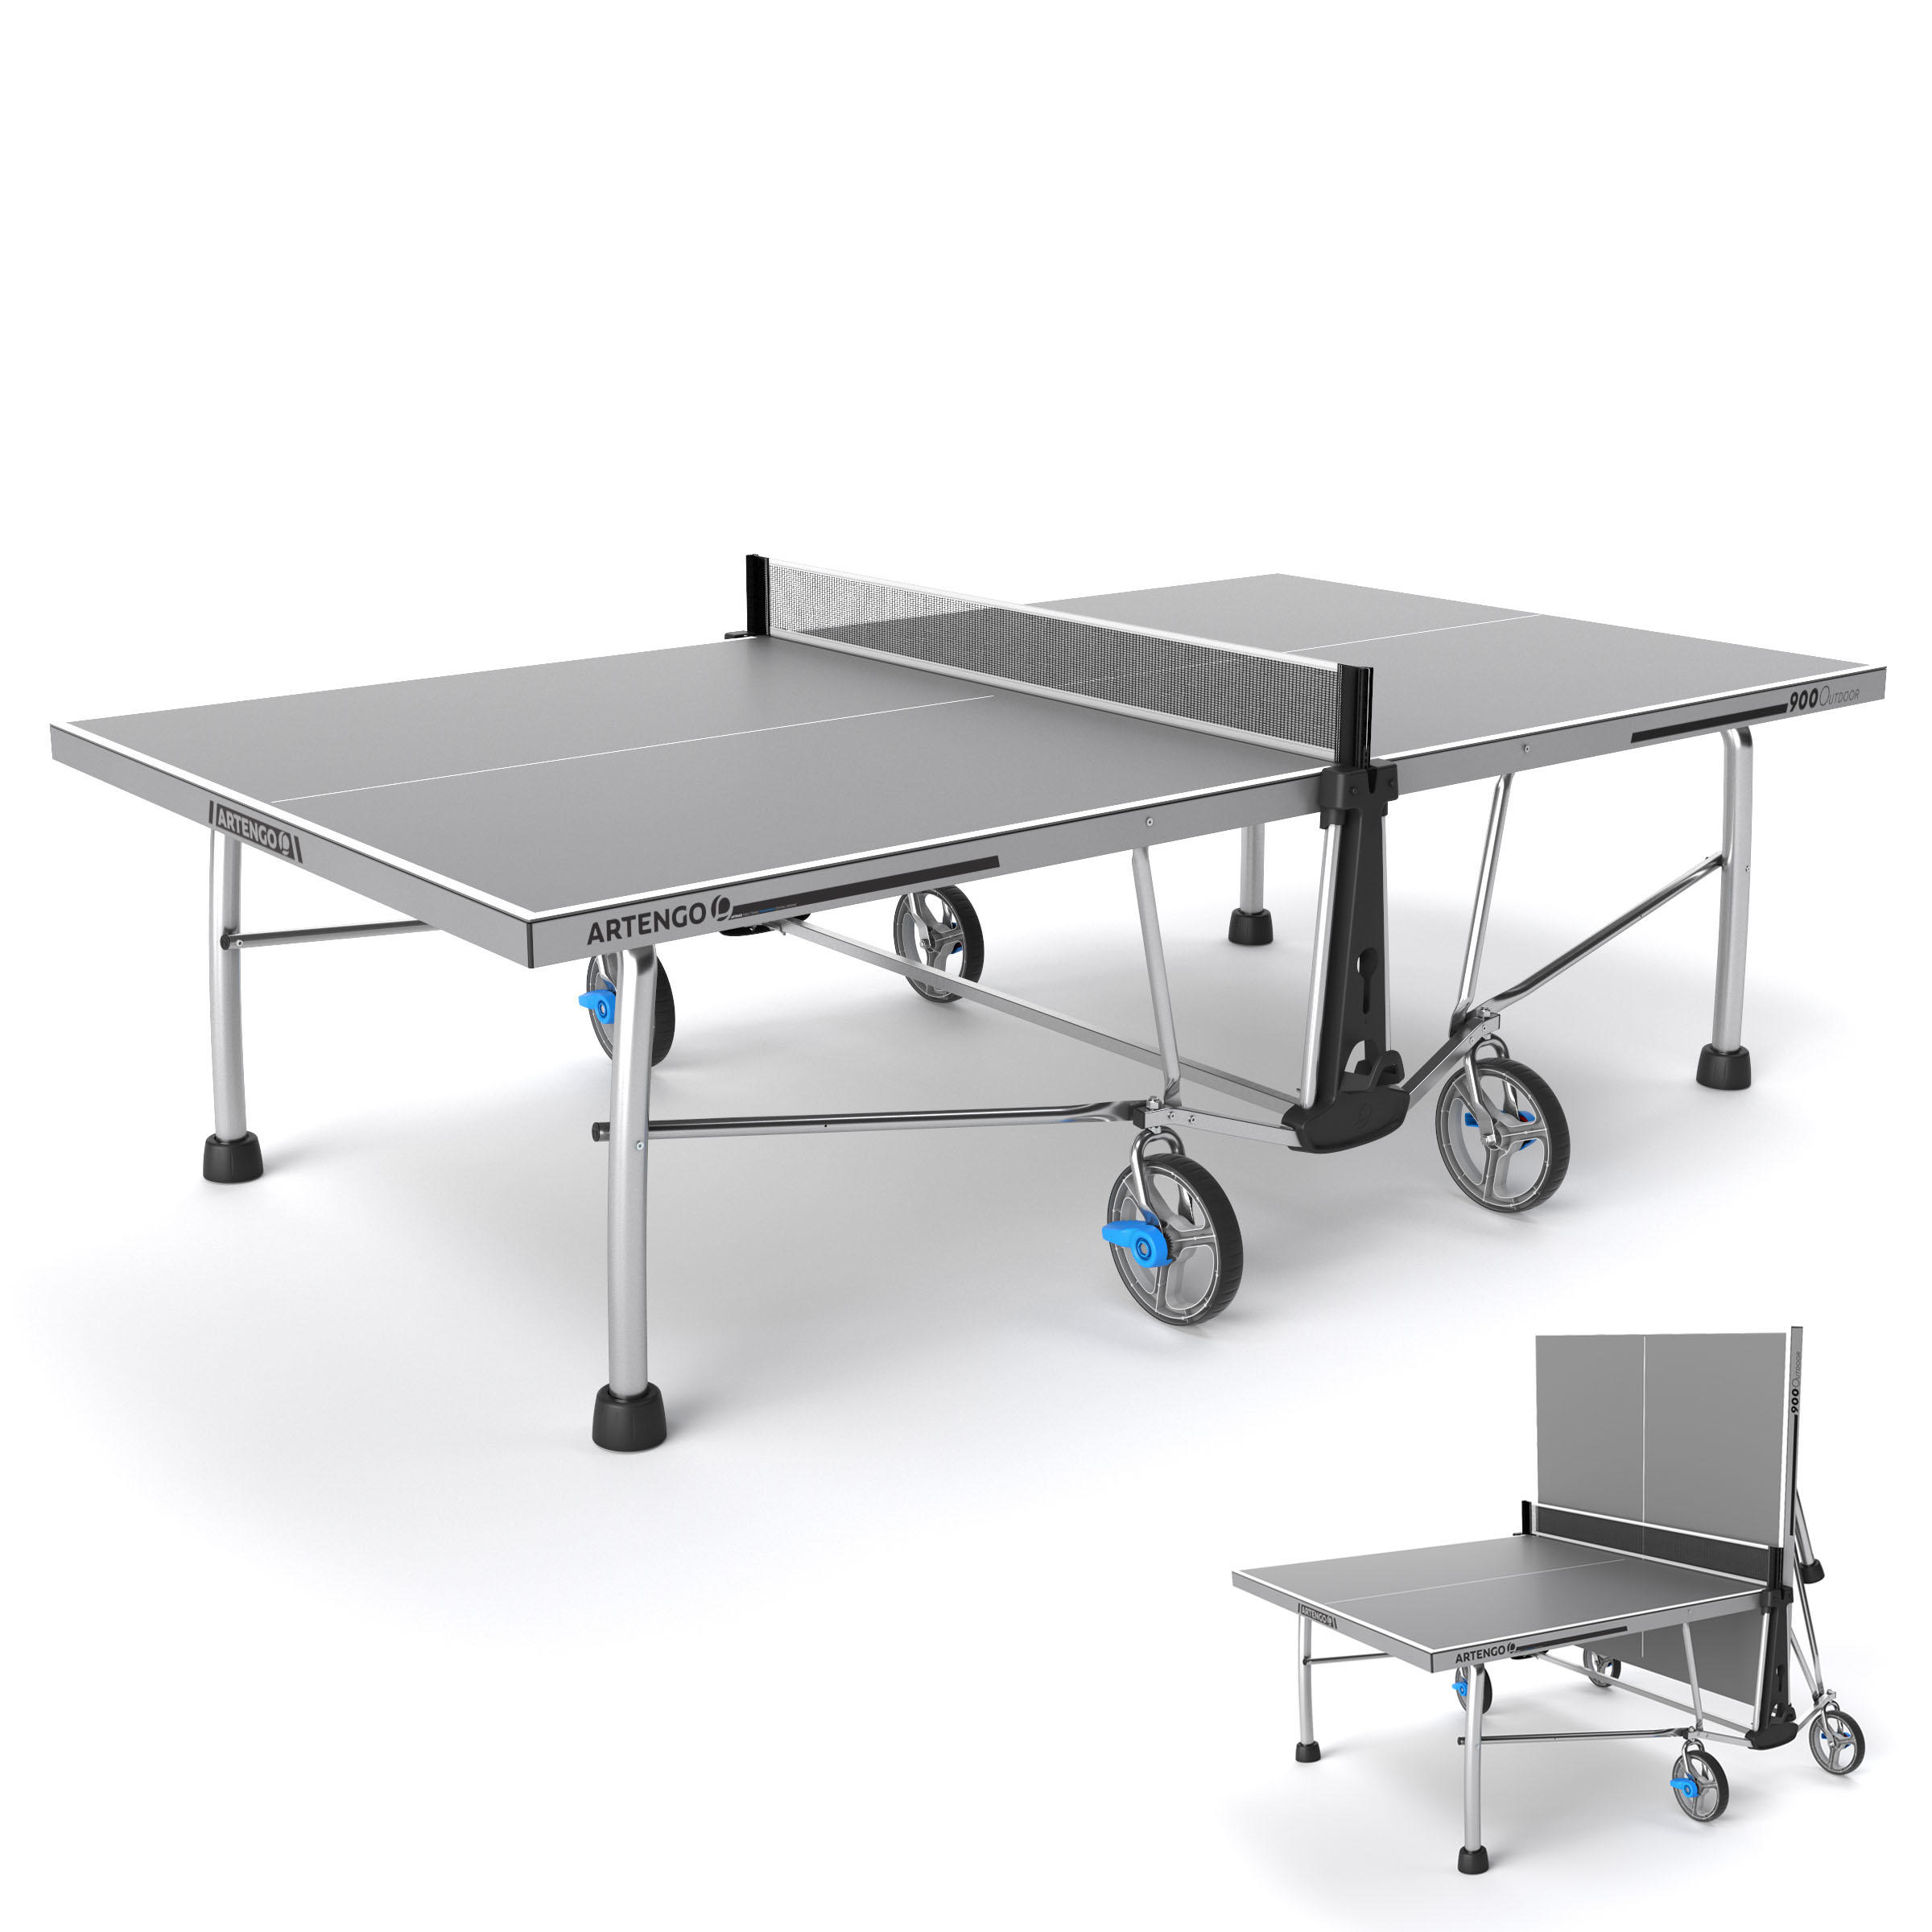 PPT 900 Outdoor Free Table Tennis Table